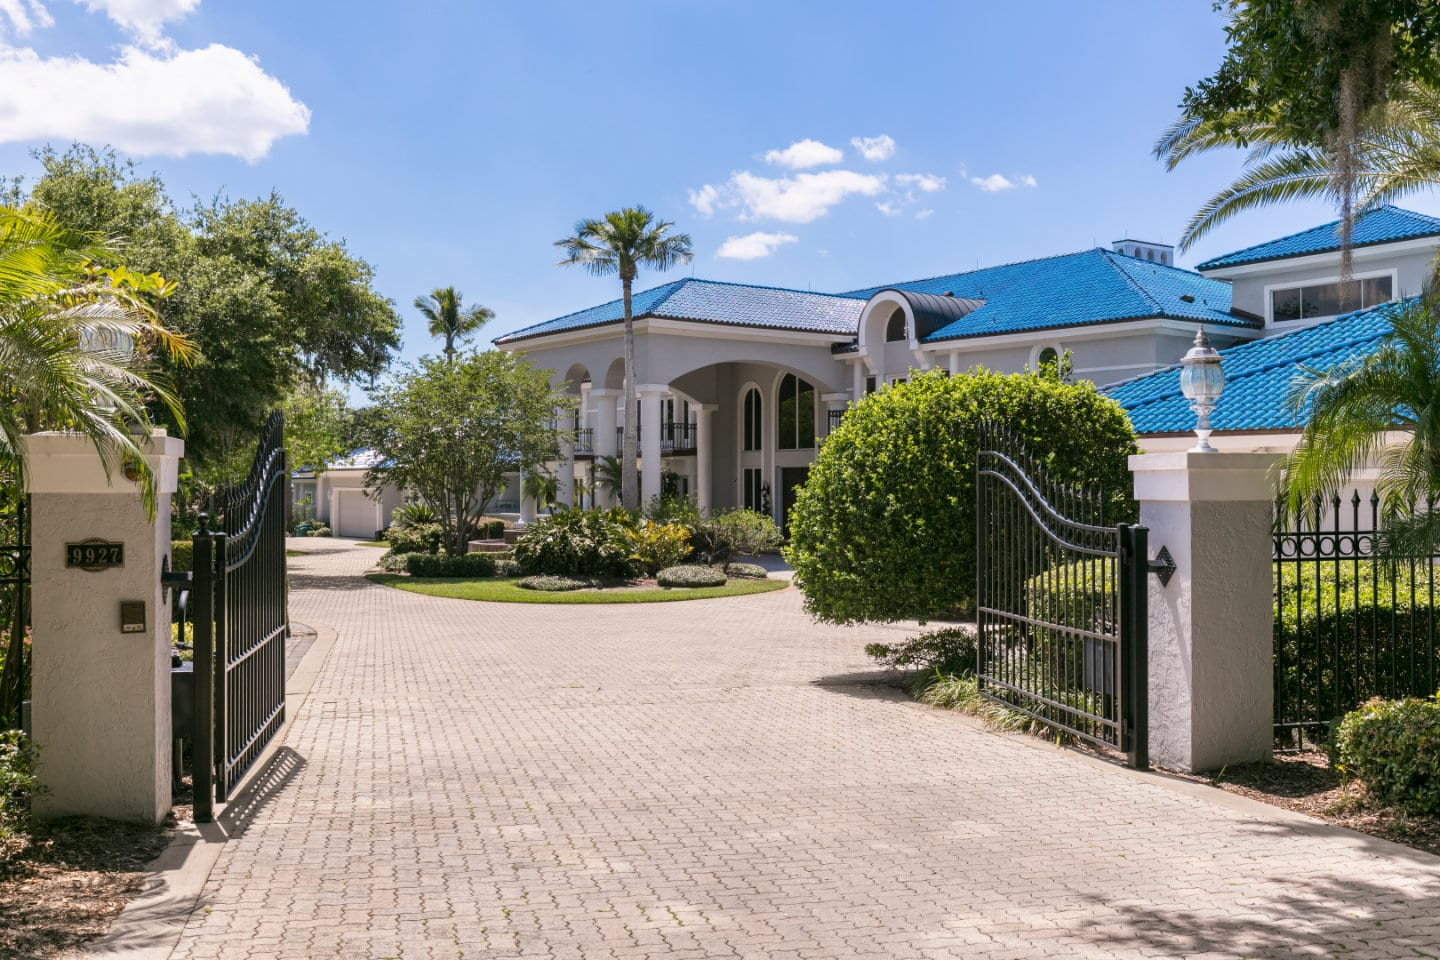 Entrance to the Shaquille O'Neal Florida Mansion